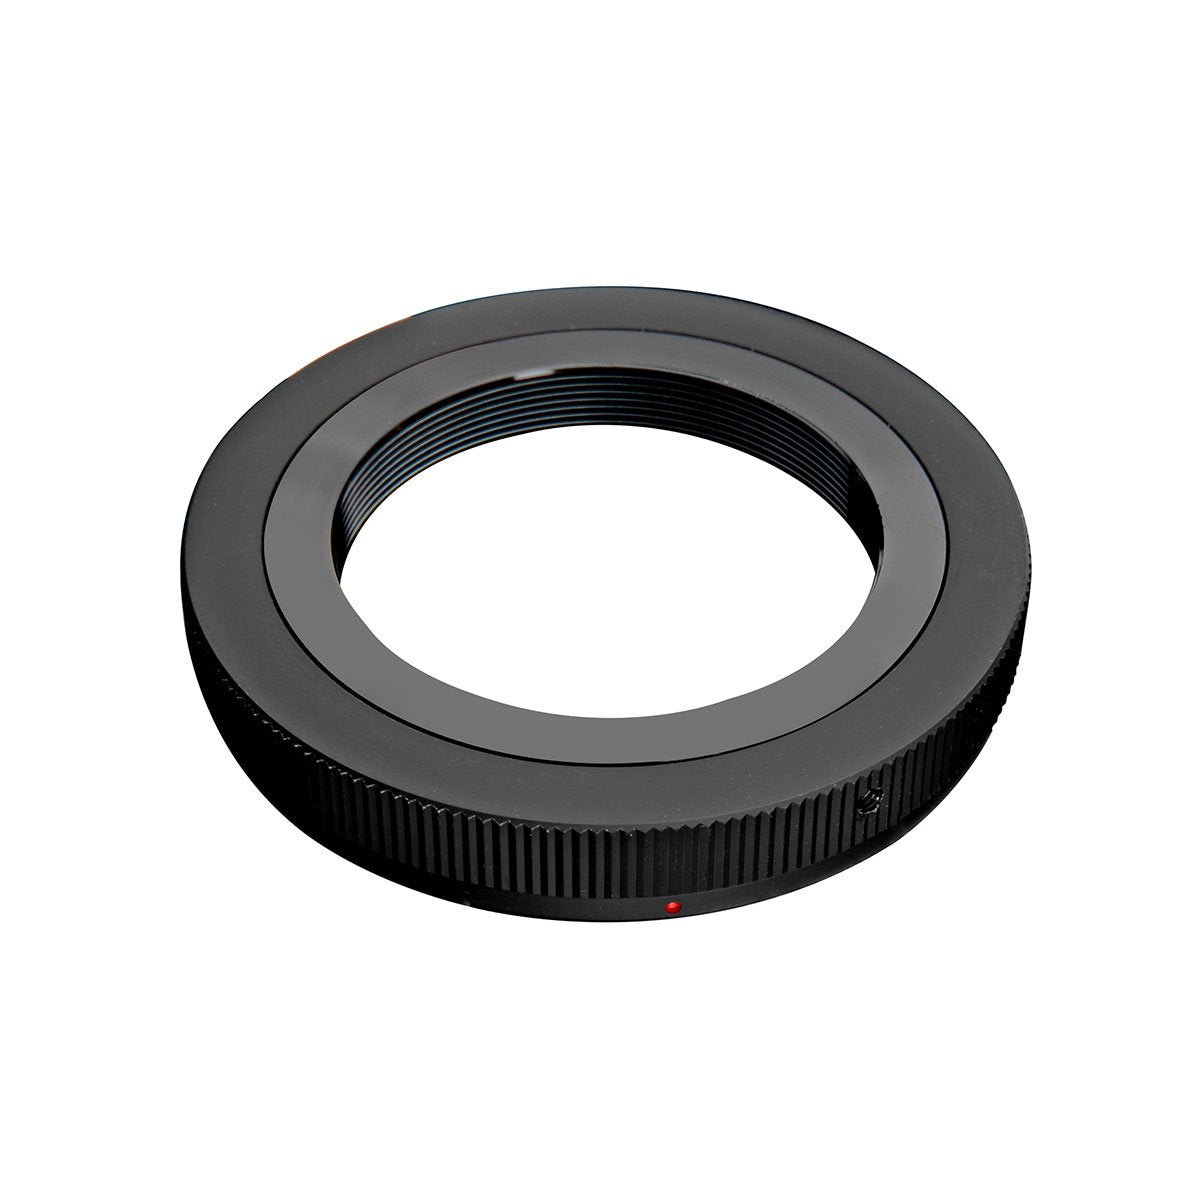 Explore Scientific T2 Ring for Canon DSLR